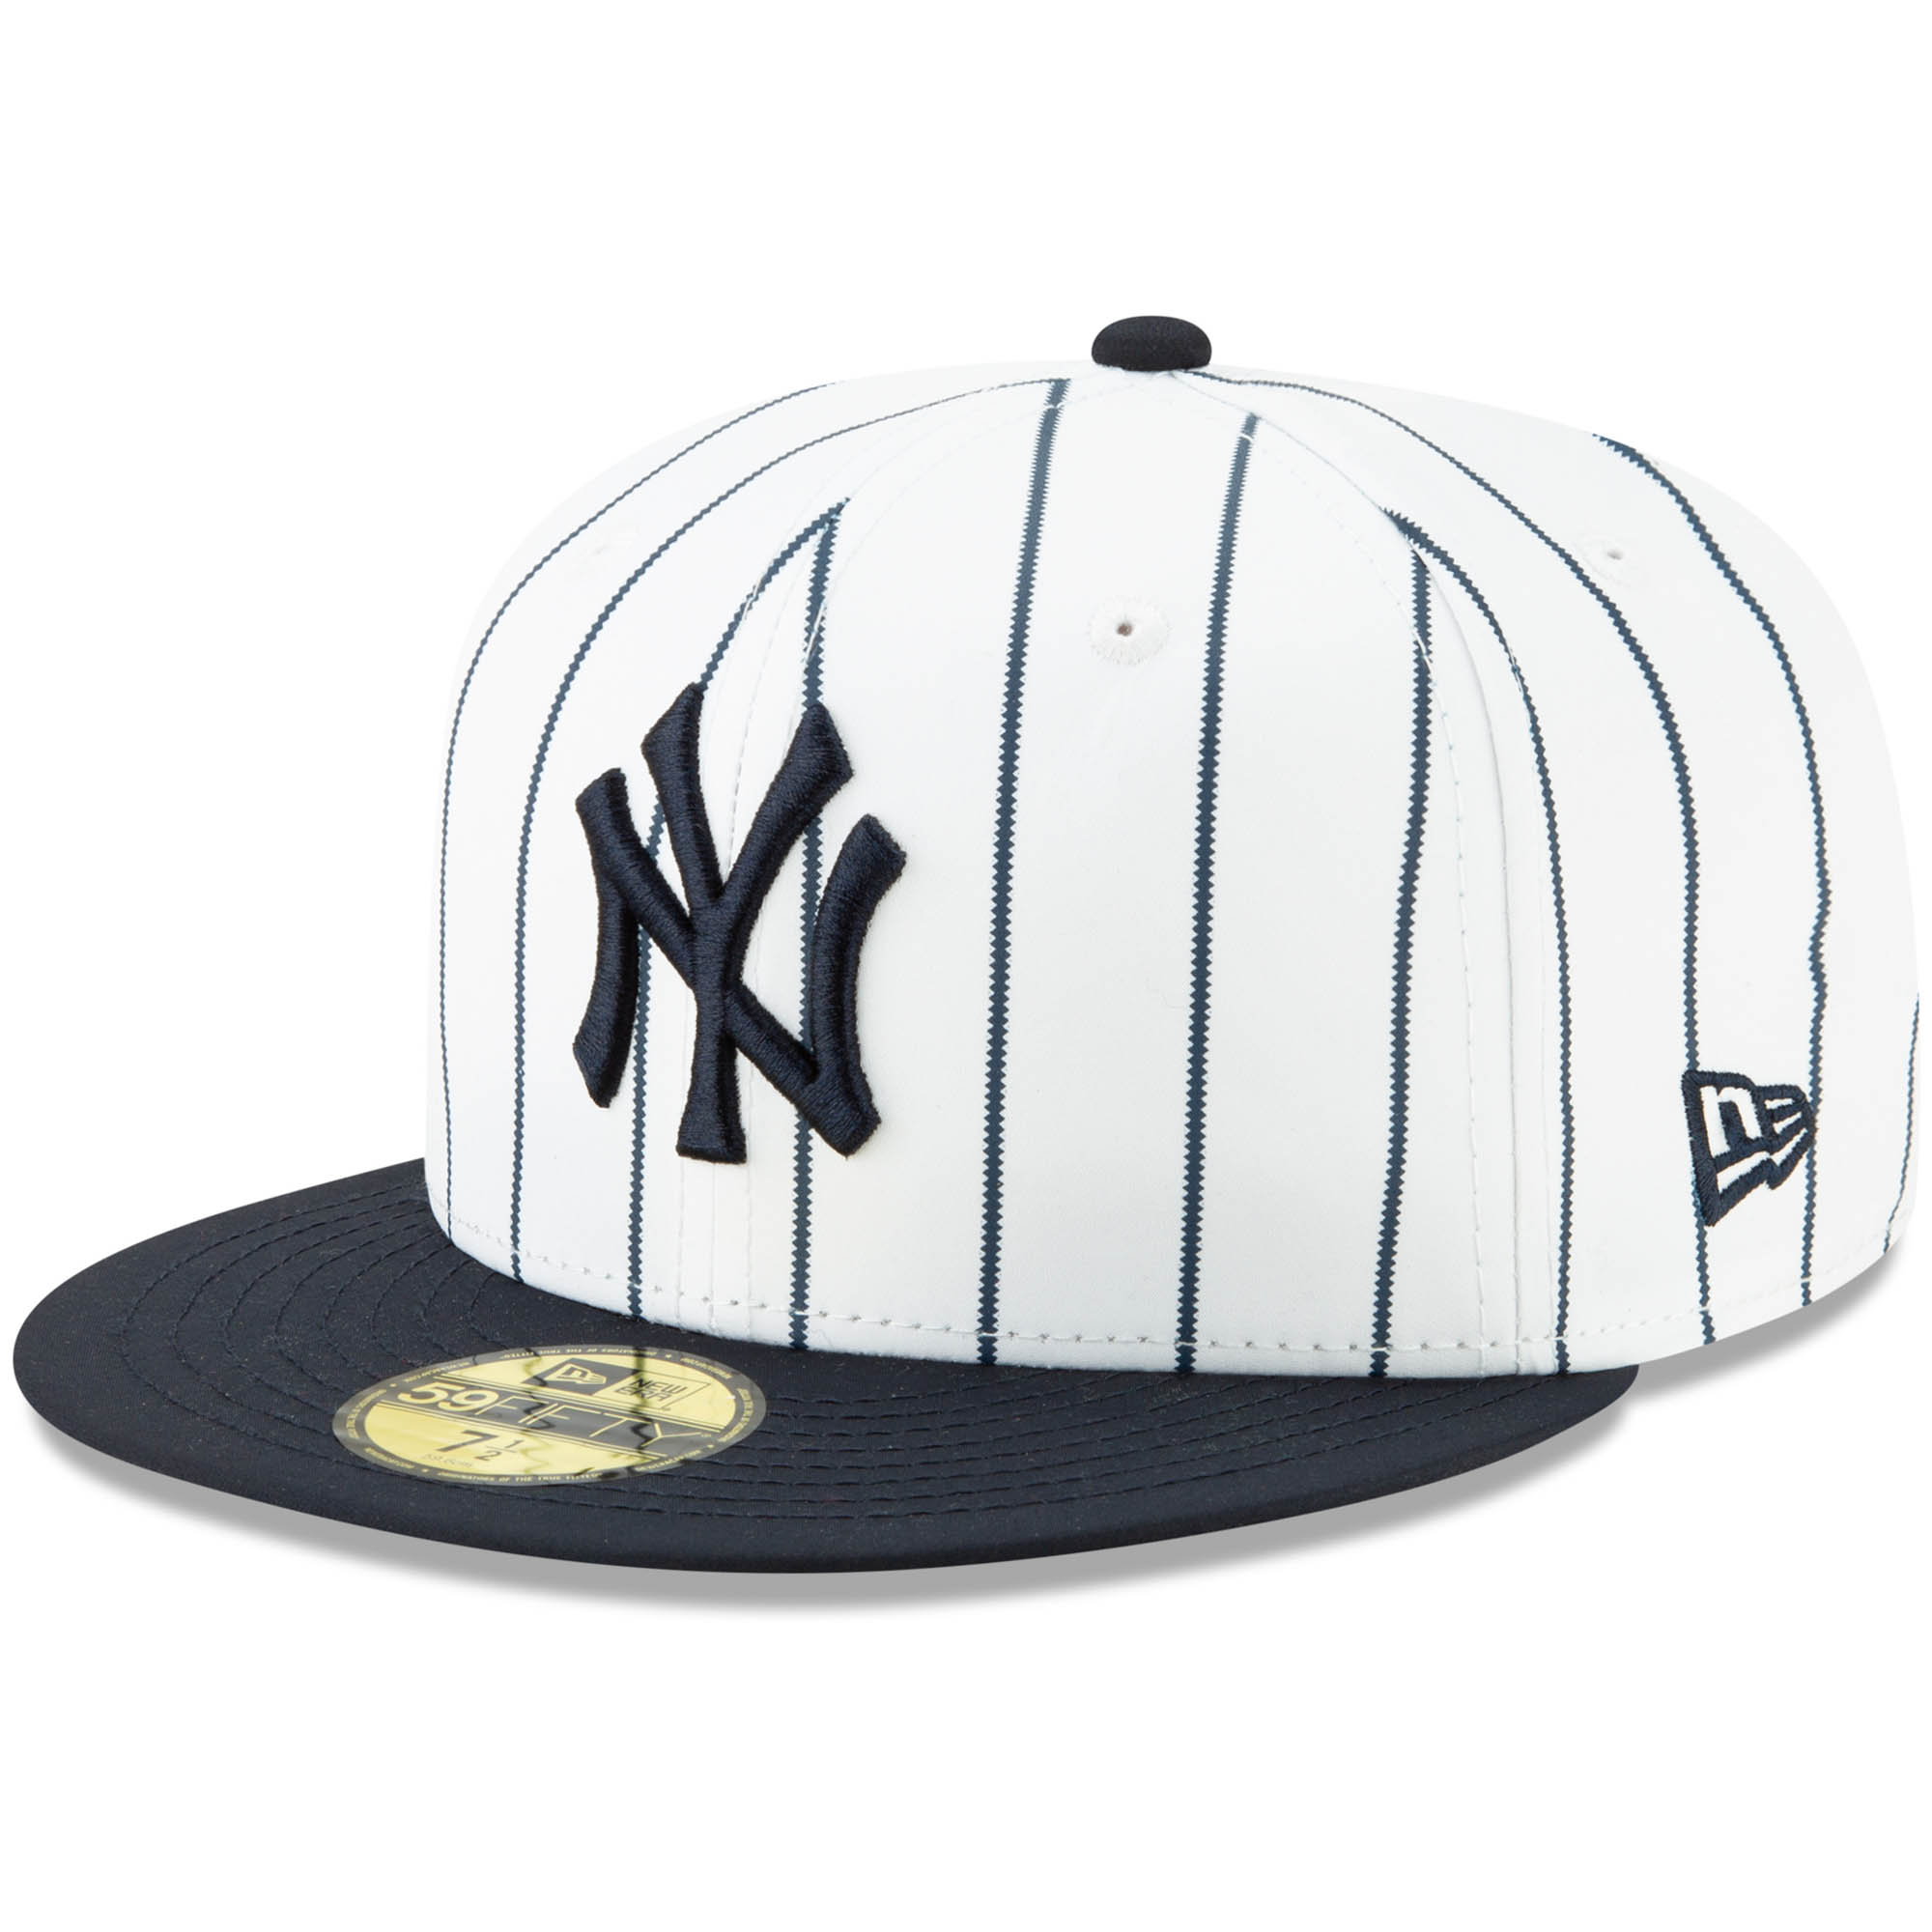 New York Yankees New Era Alternate Logo 59FIFTY Fitted Hat - White